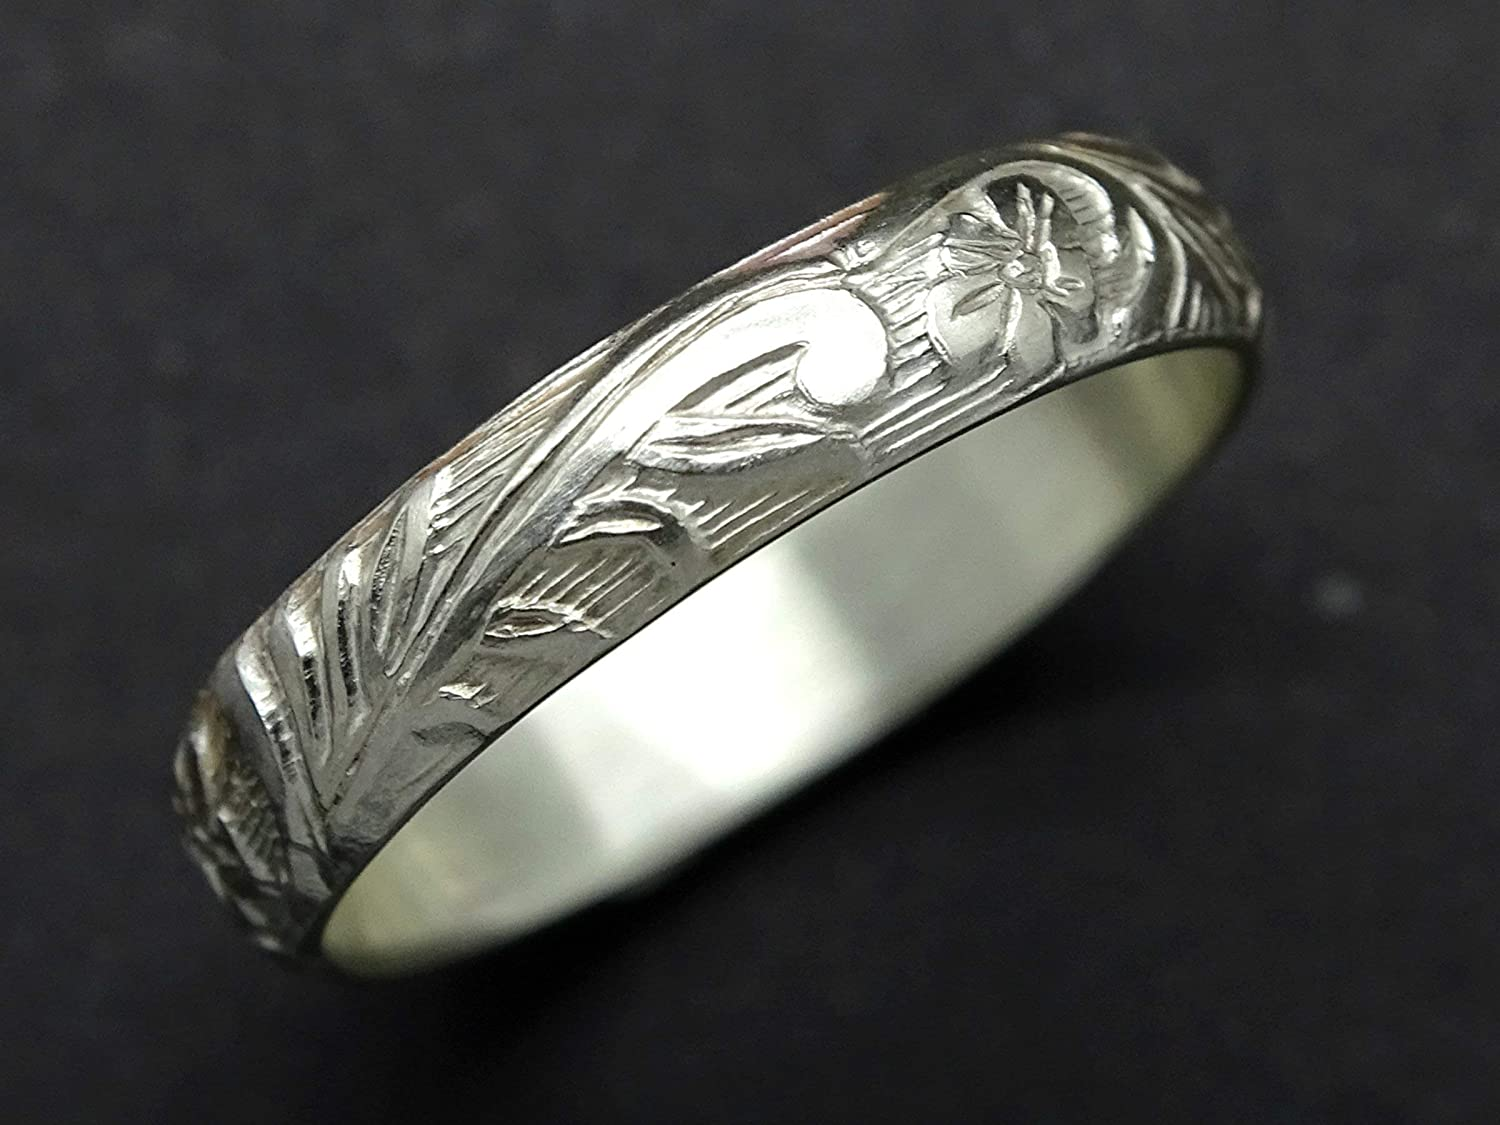 Silver woodland winery hand engraved flowers and leaves botanical womens wedding ring sterling silver wide women band artisan floral ring